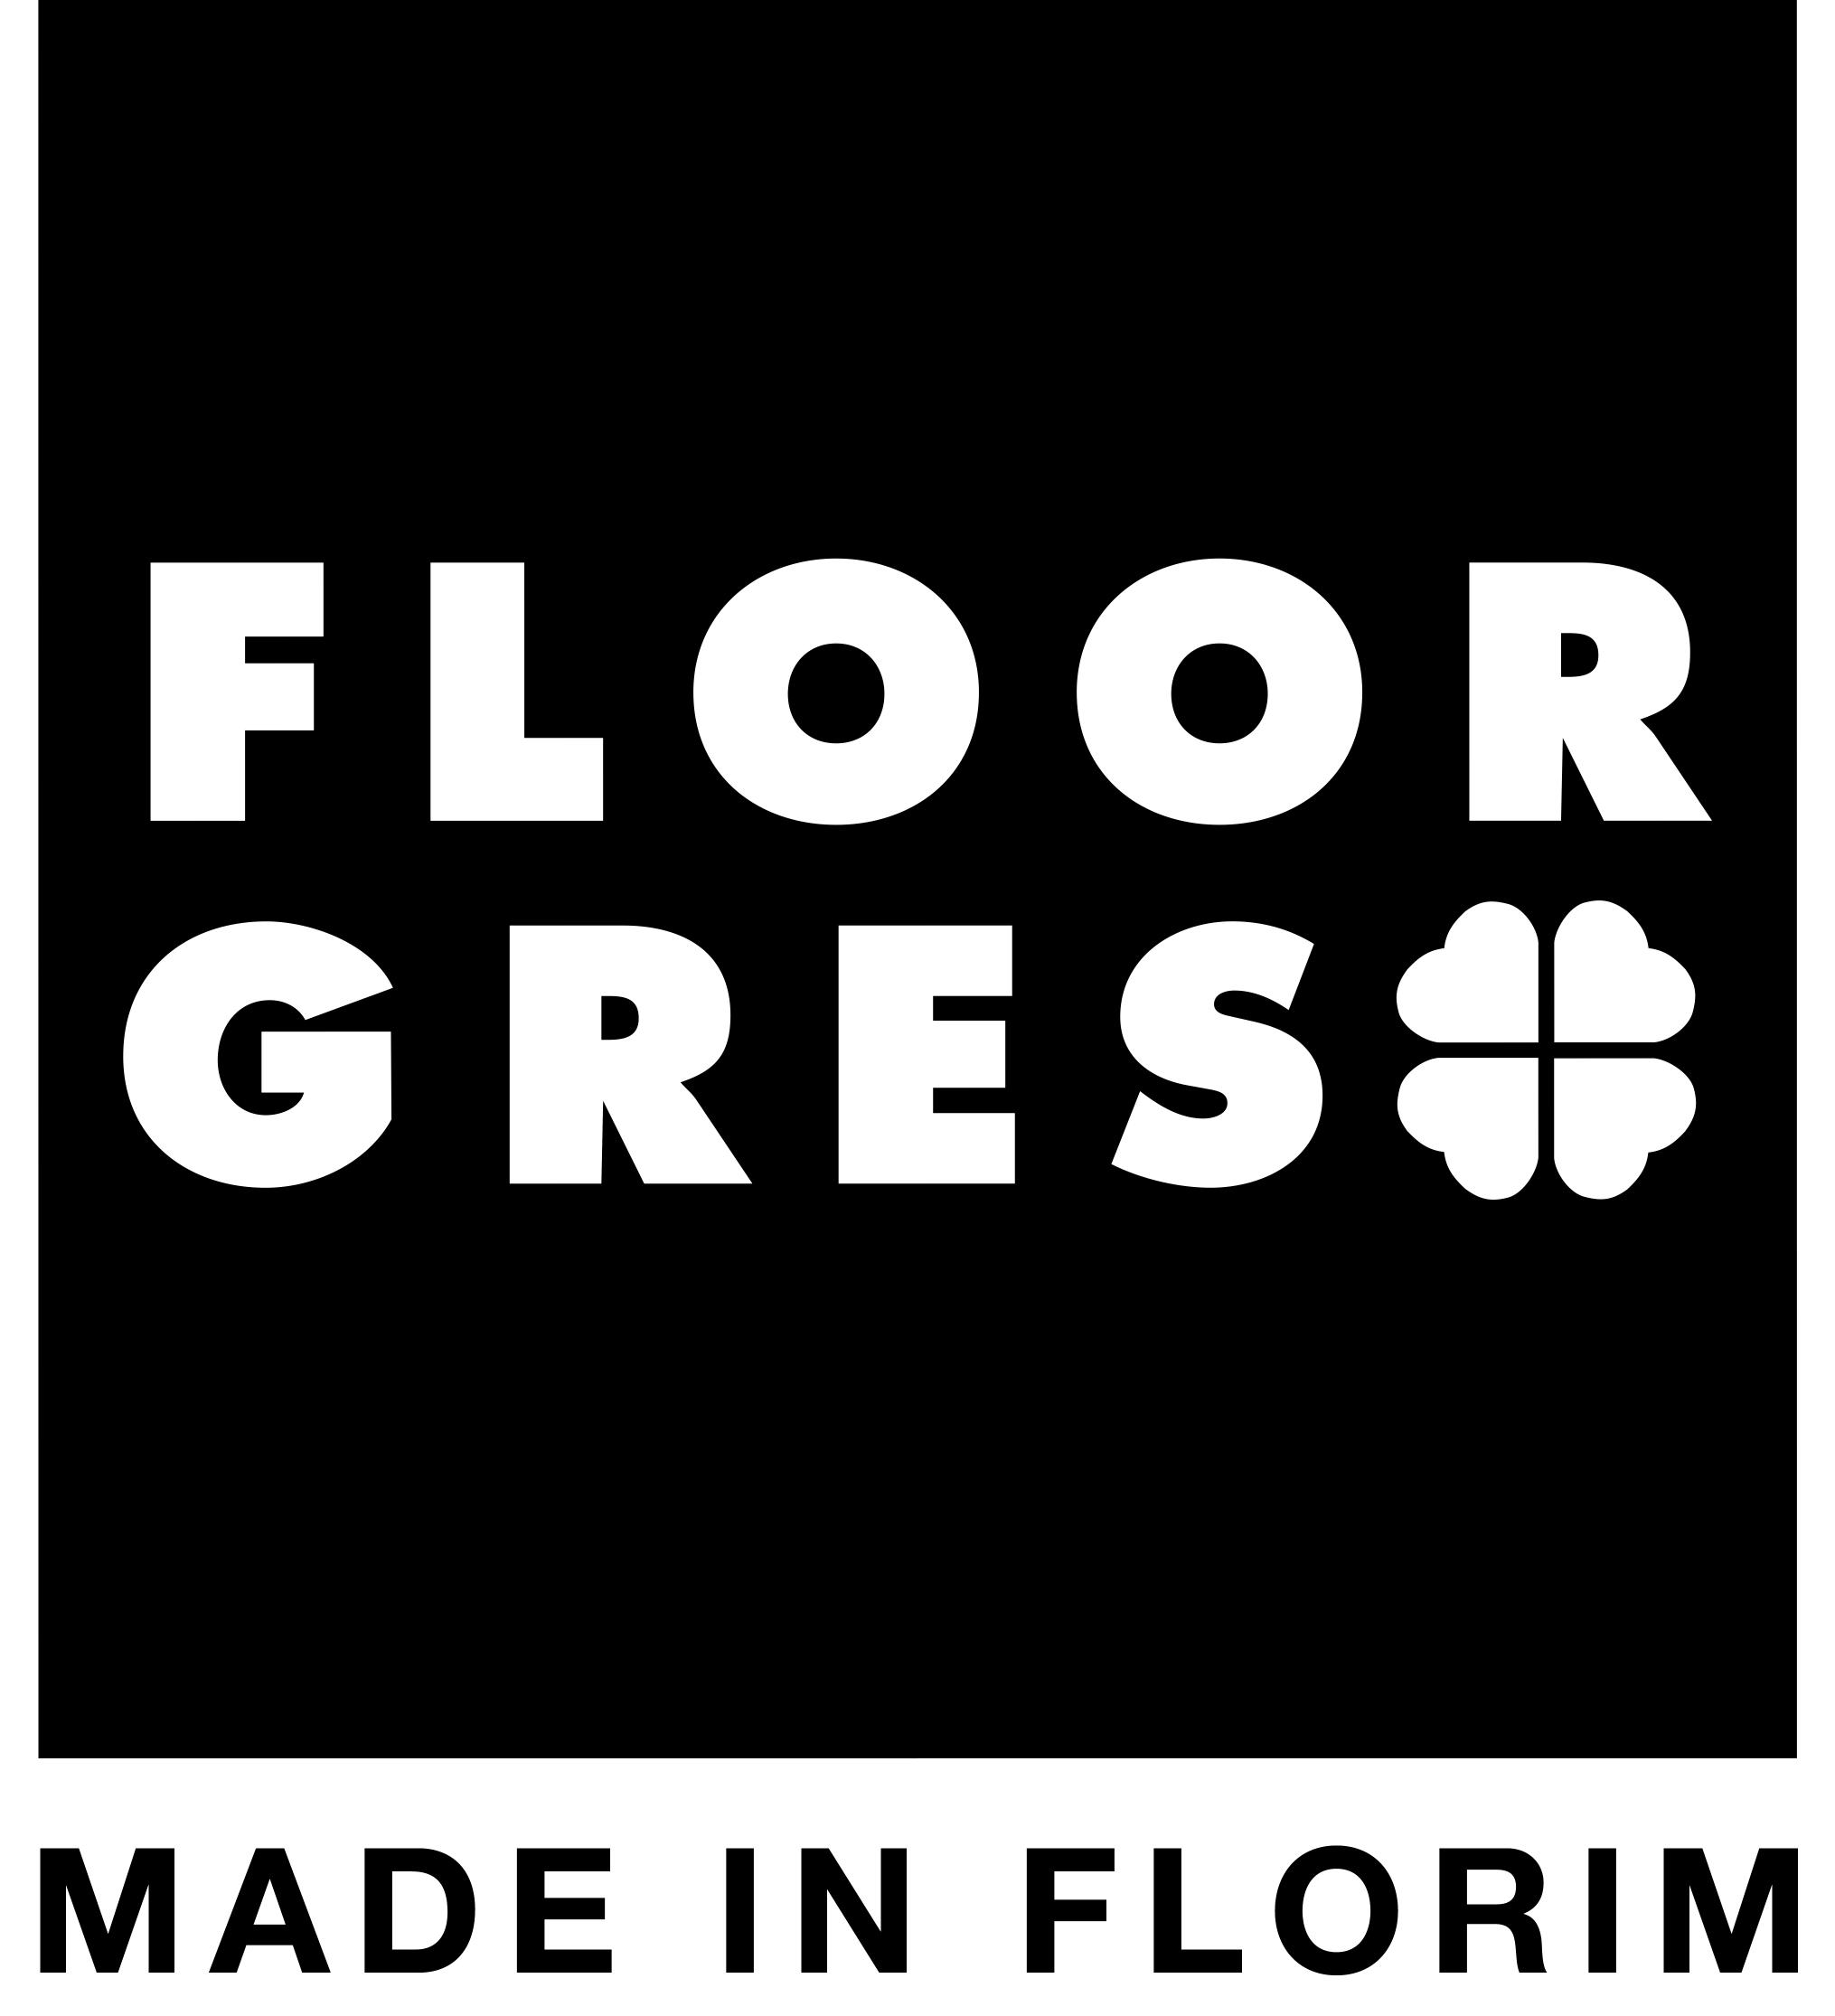 Walls and Floors brand Floorgres